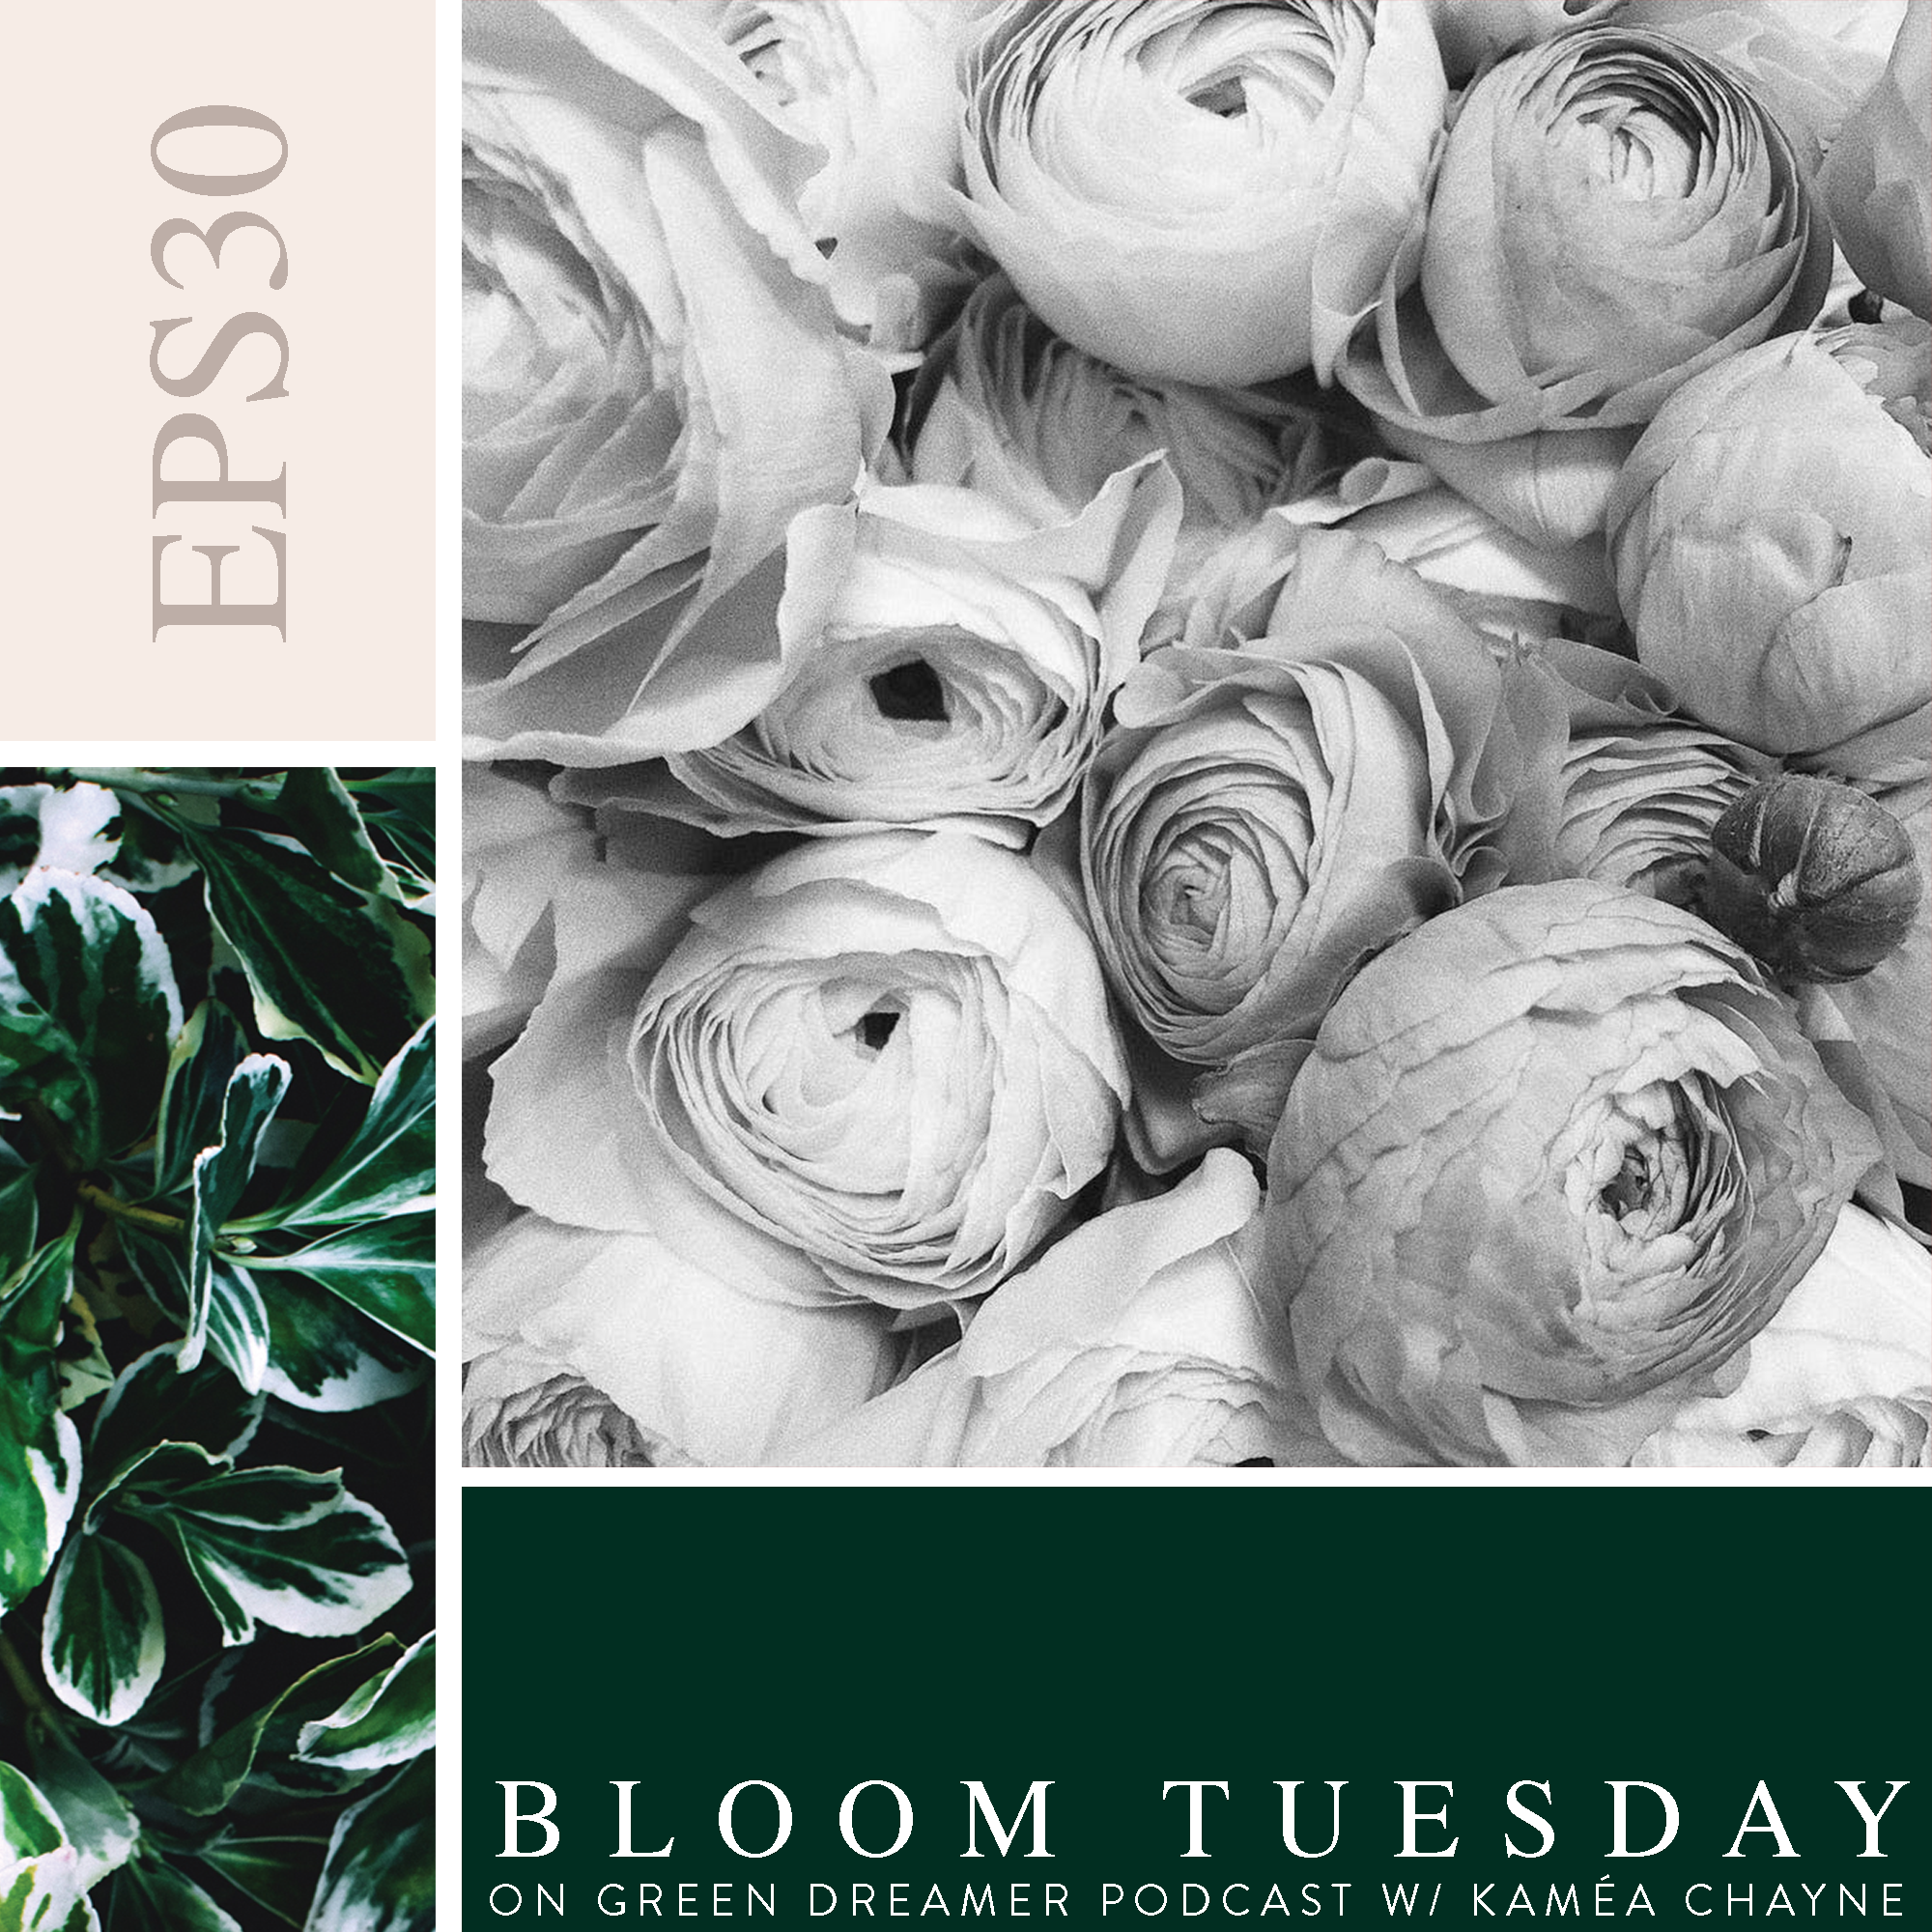 30) BLOOM TUESDAY